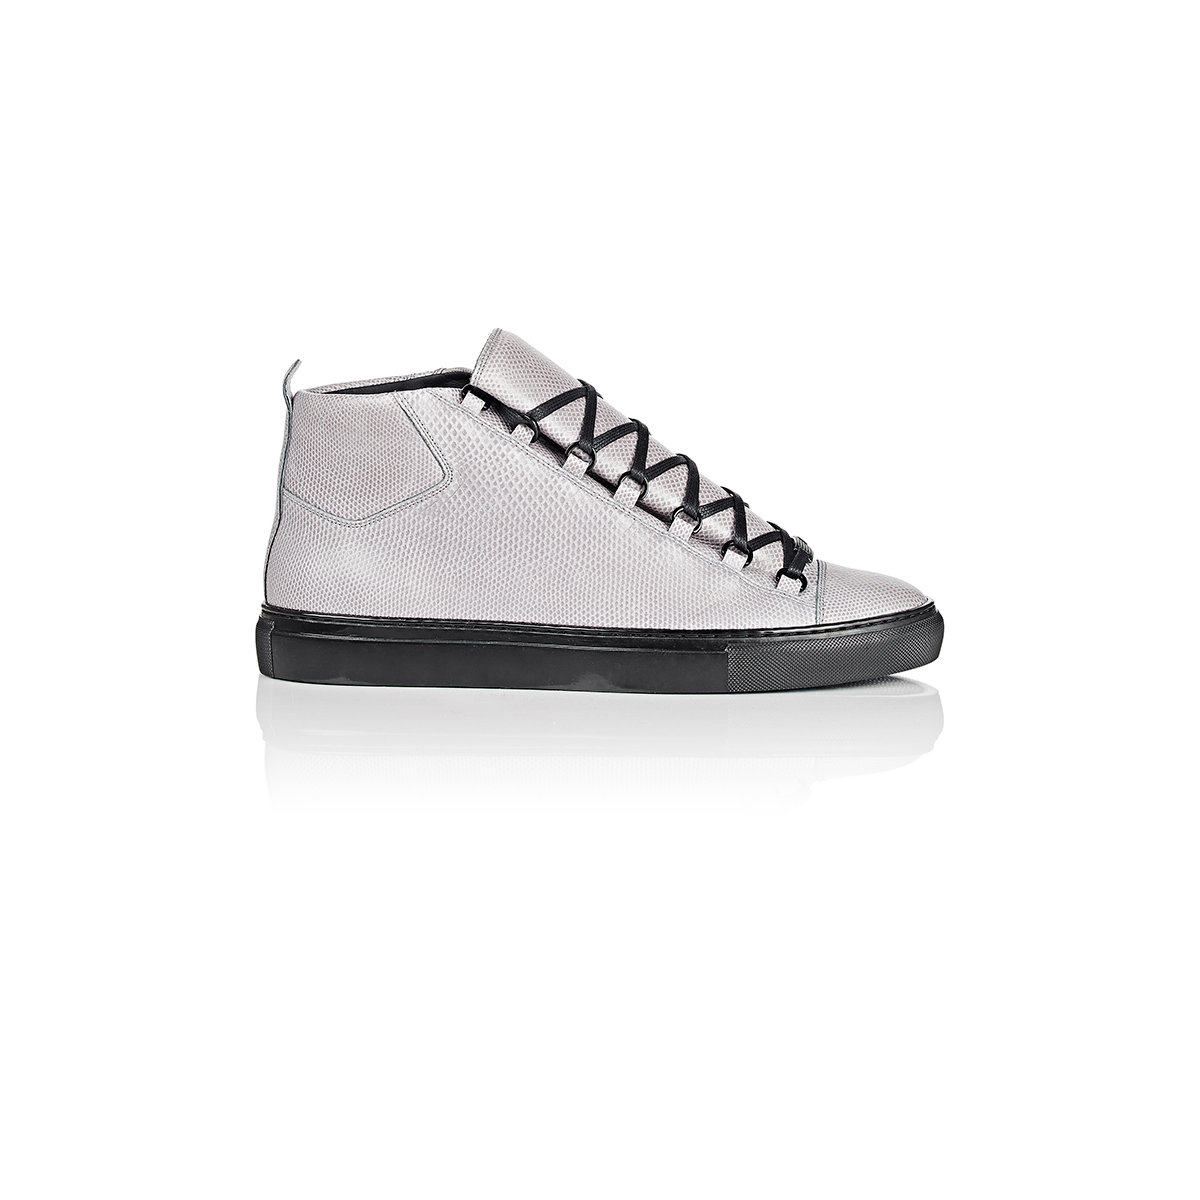 3477c7aef91b Lyst - Balenciaga Snakeskin Arena High-top Sneakers in Gray for Men